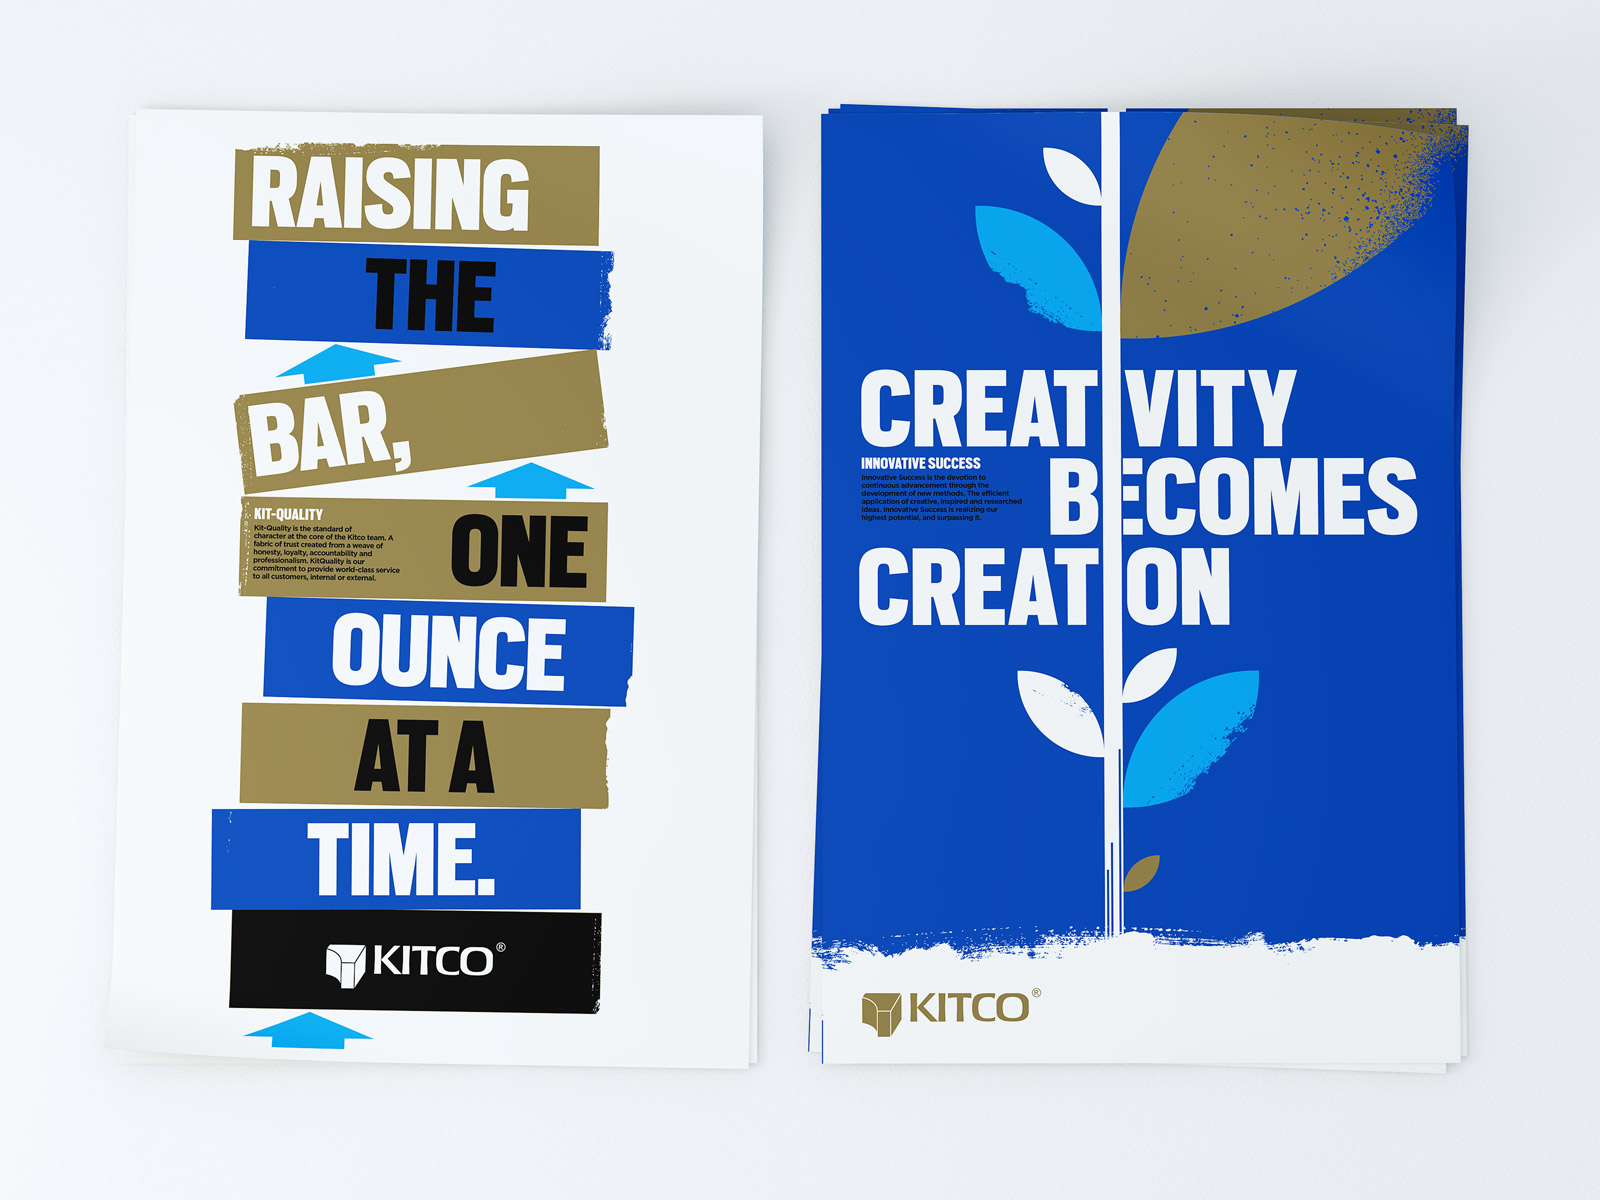 Inspirational brand posters for Kitco by Peter Sunna